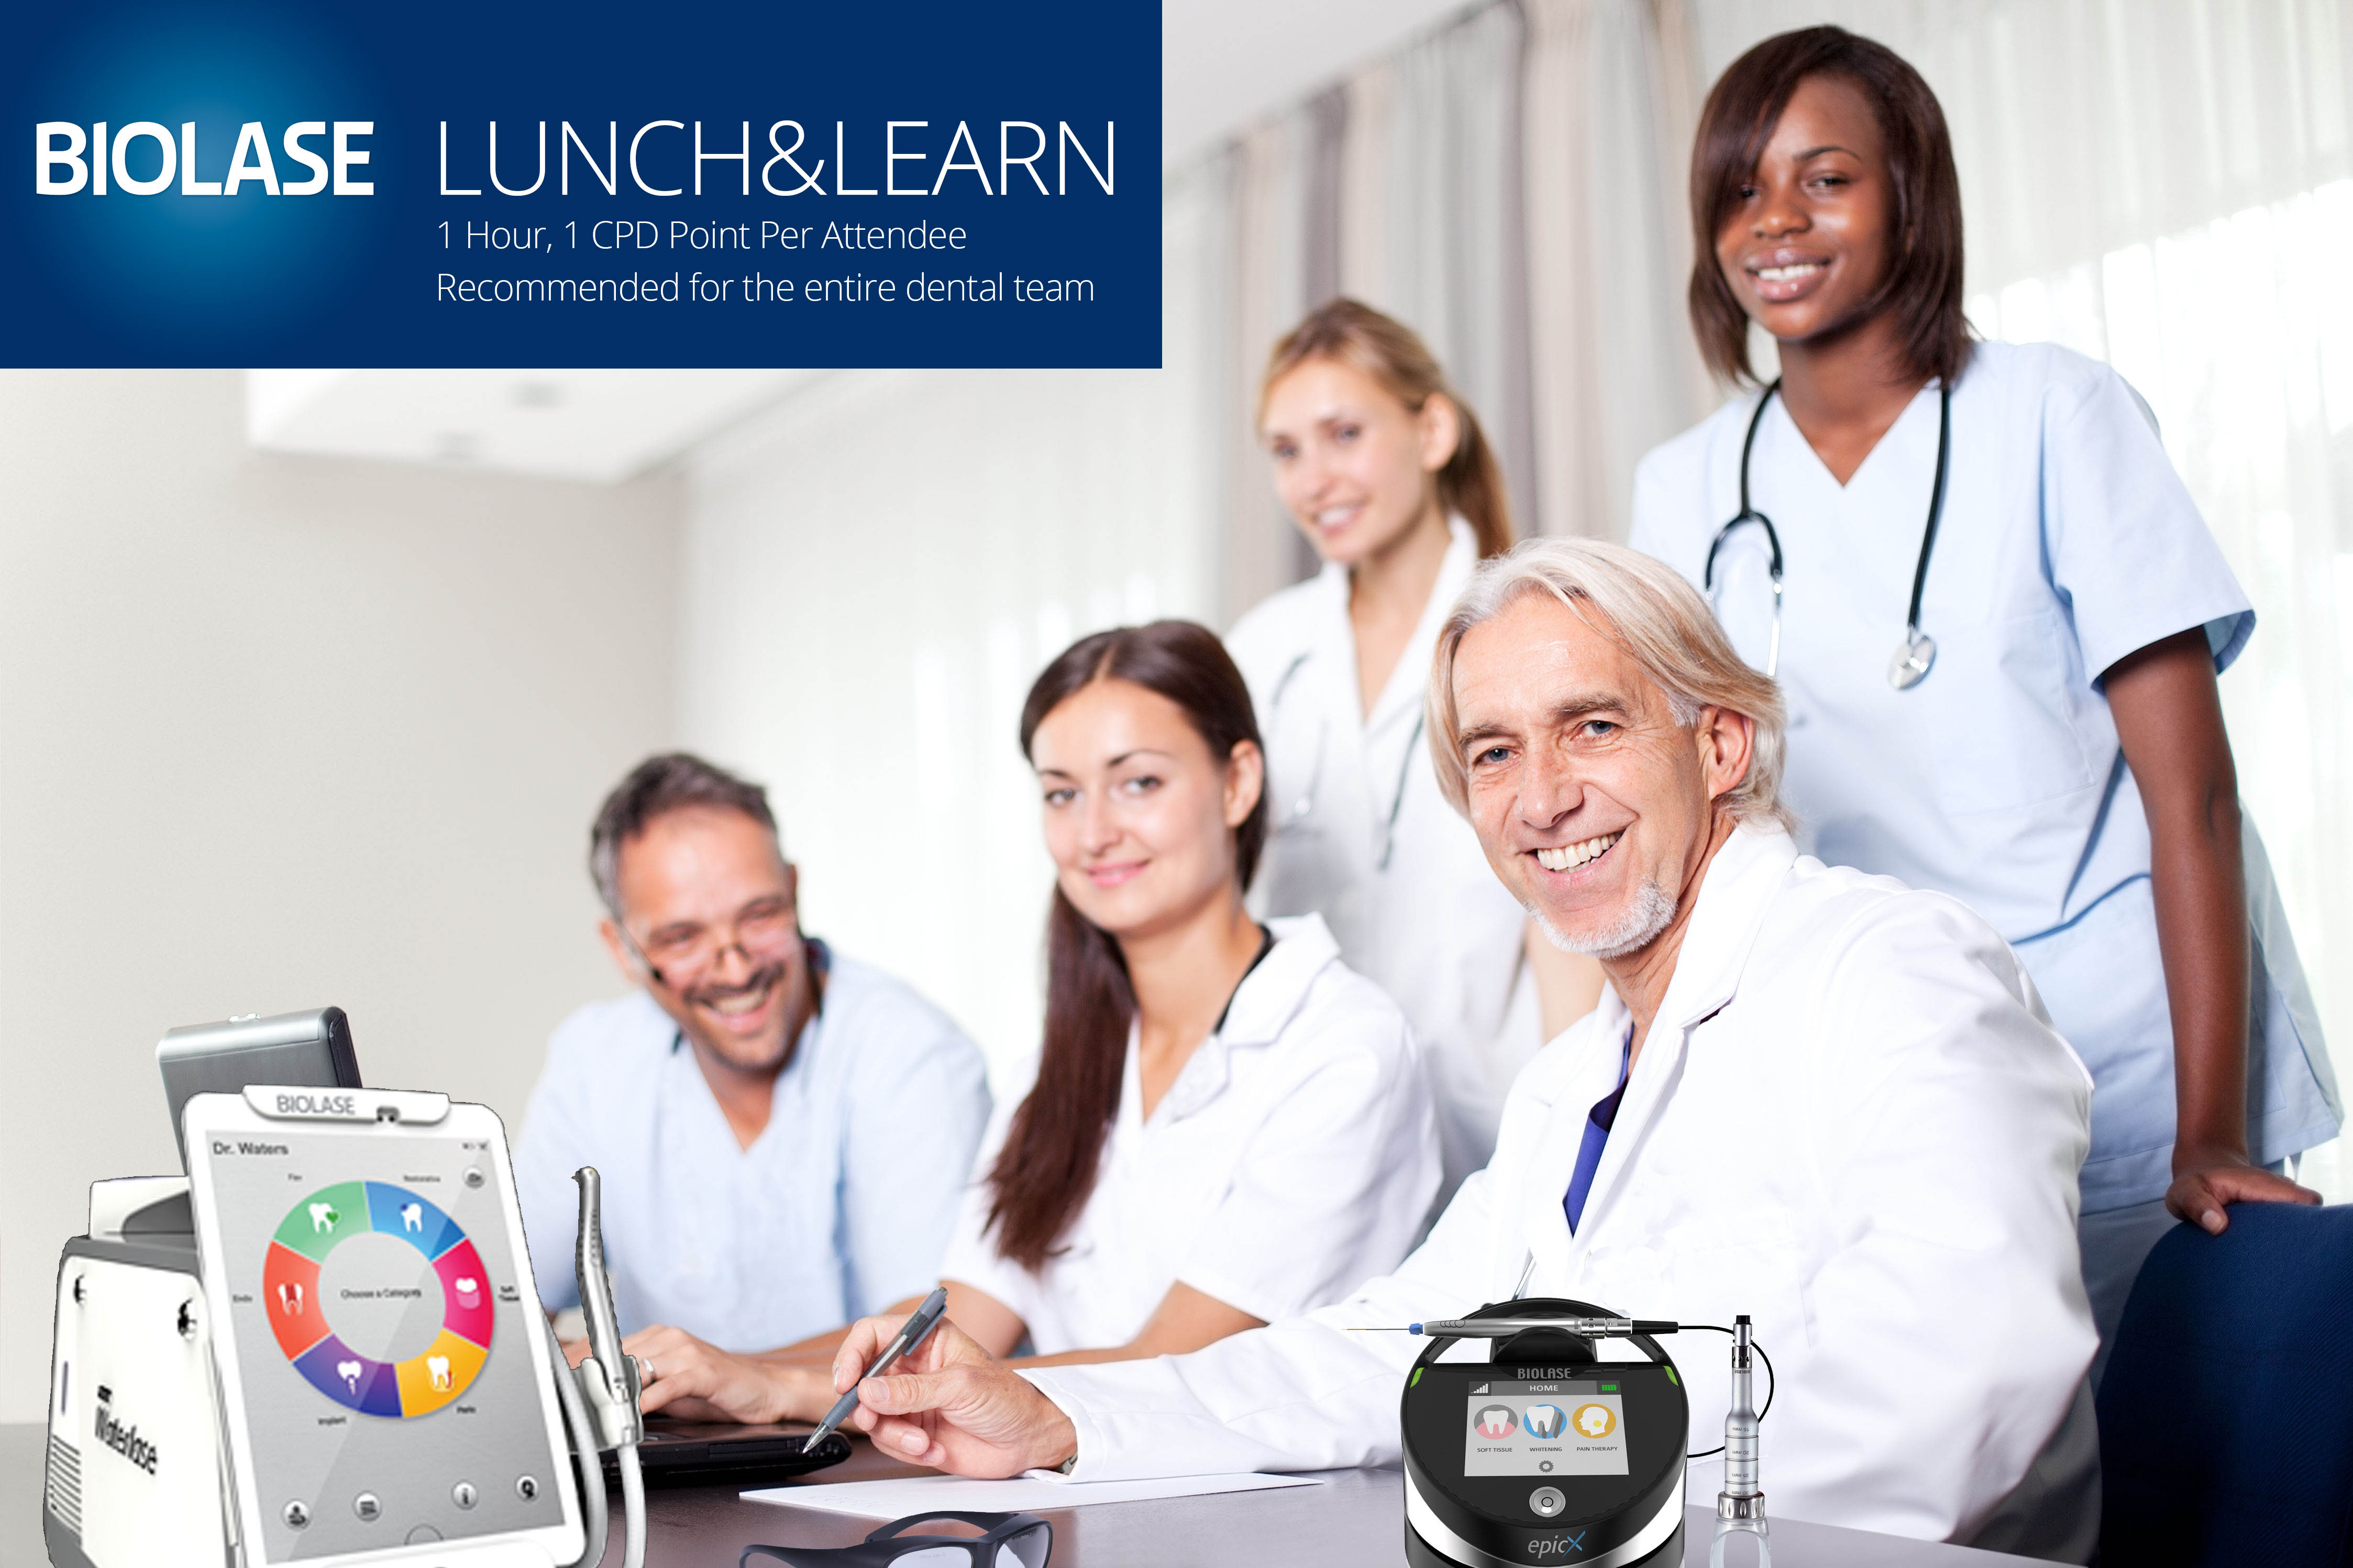 LASER LUNCH & LEARN with BIOLASE